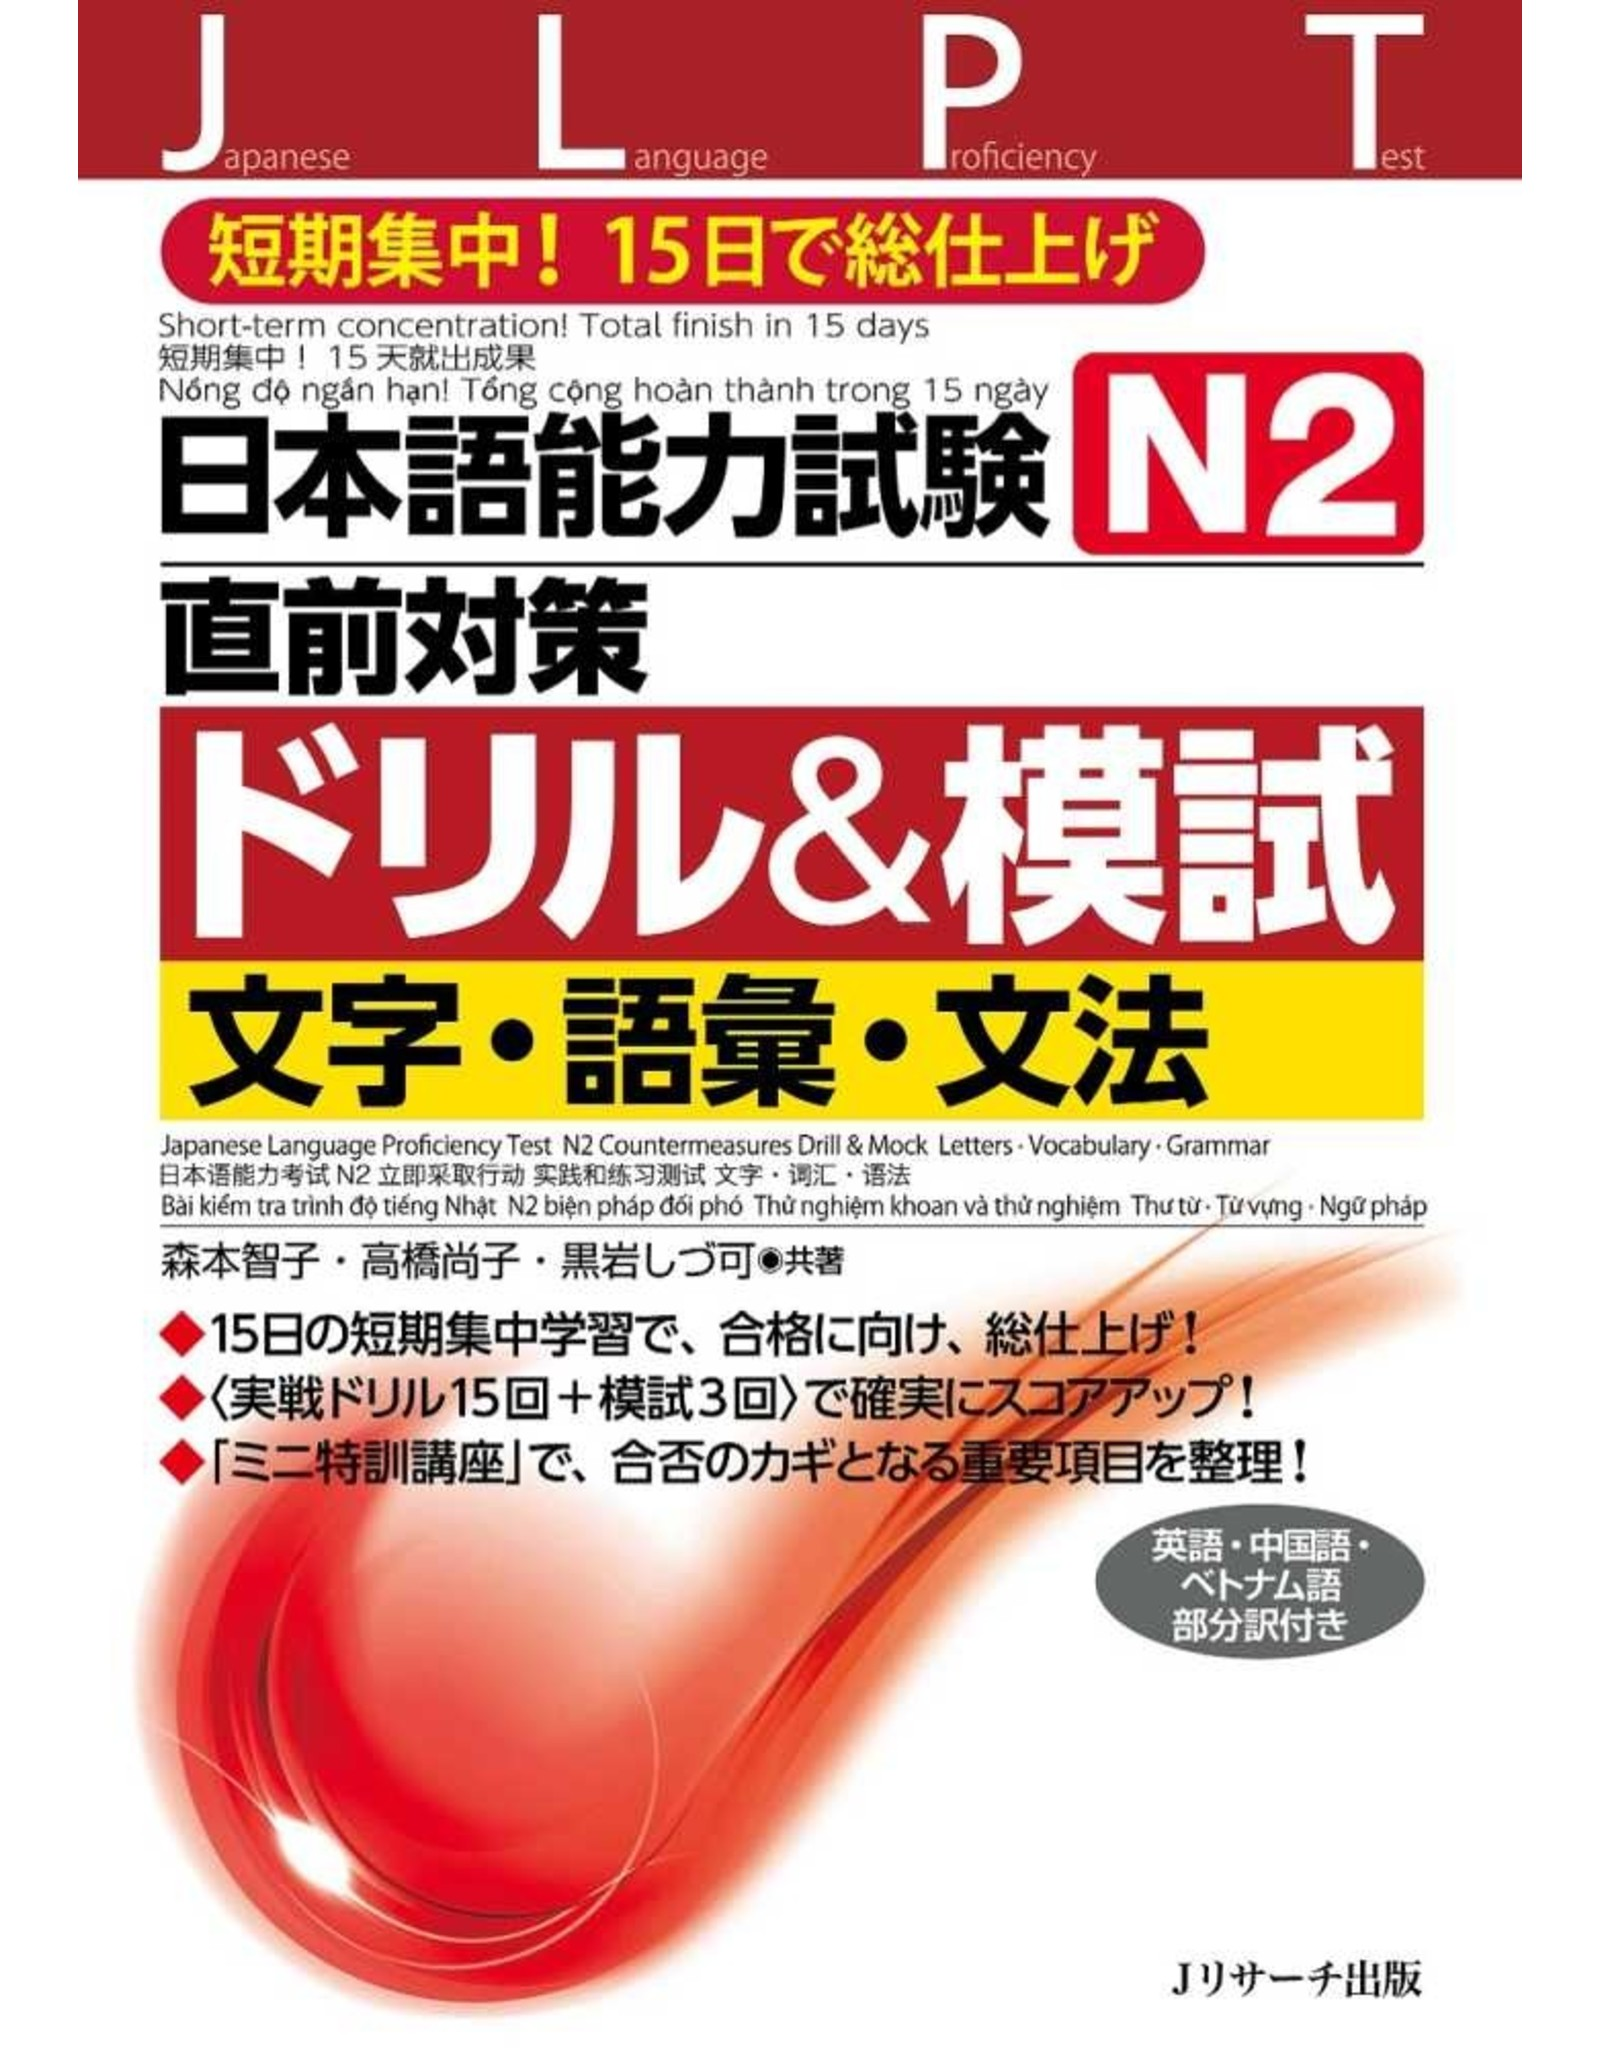 J RESEARCH JLPT N2 COUNTERMEASURES DRILL & MOCK LETTERS VOCABULARY GRAMMAR